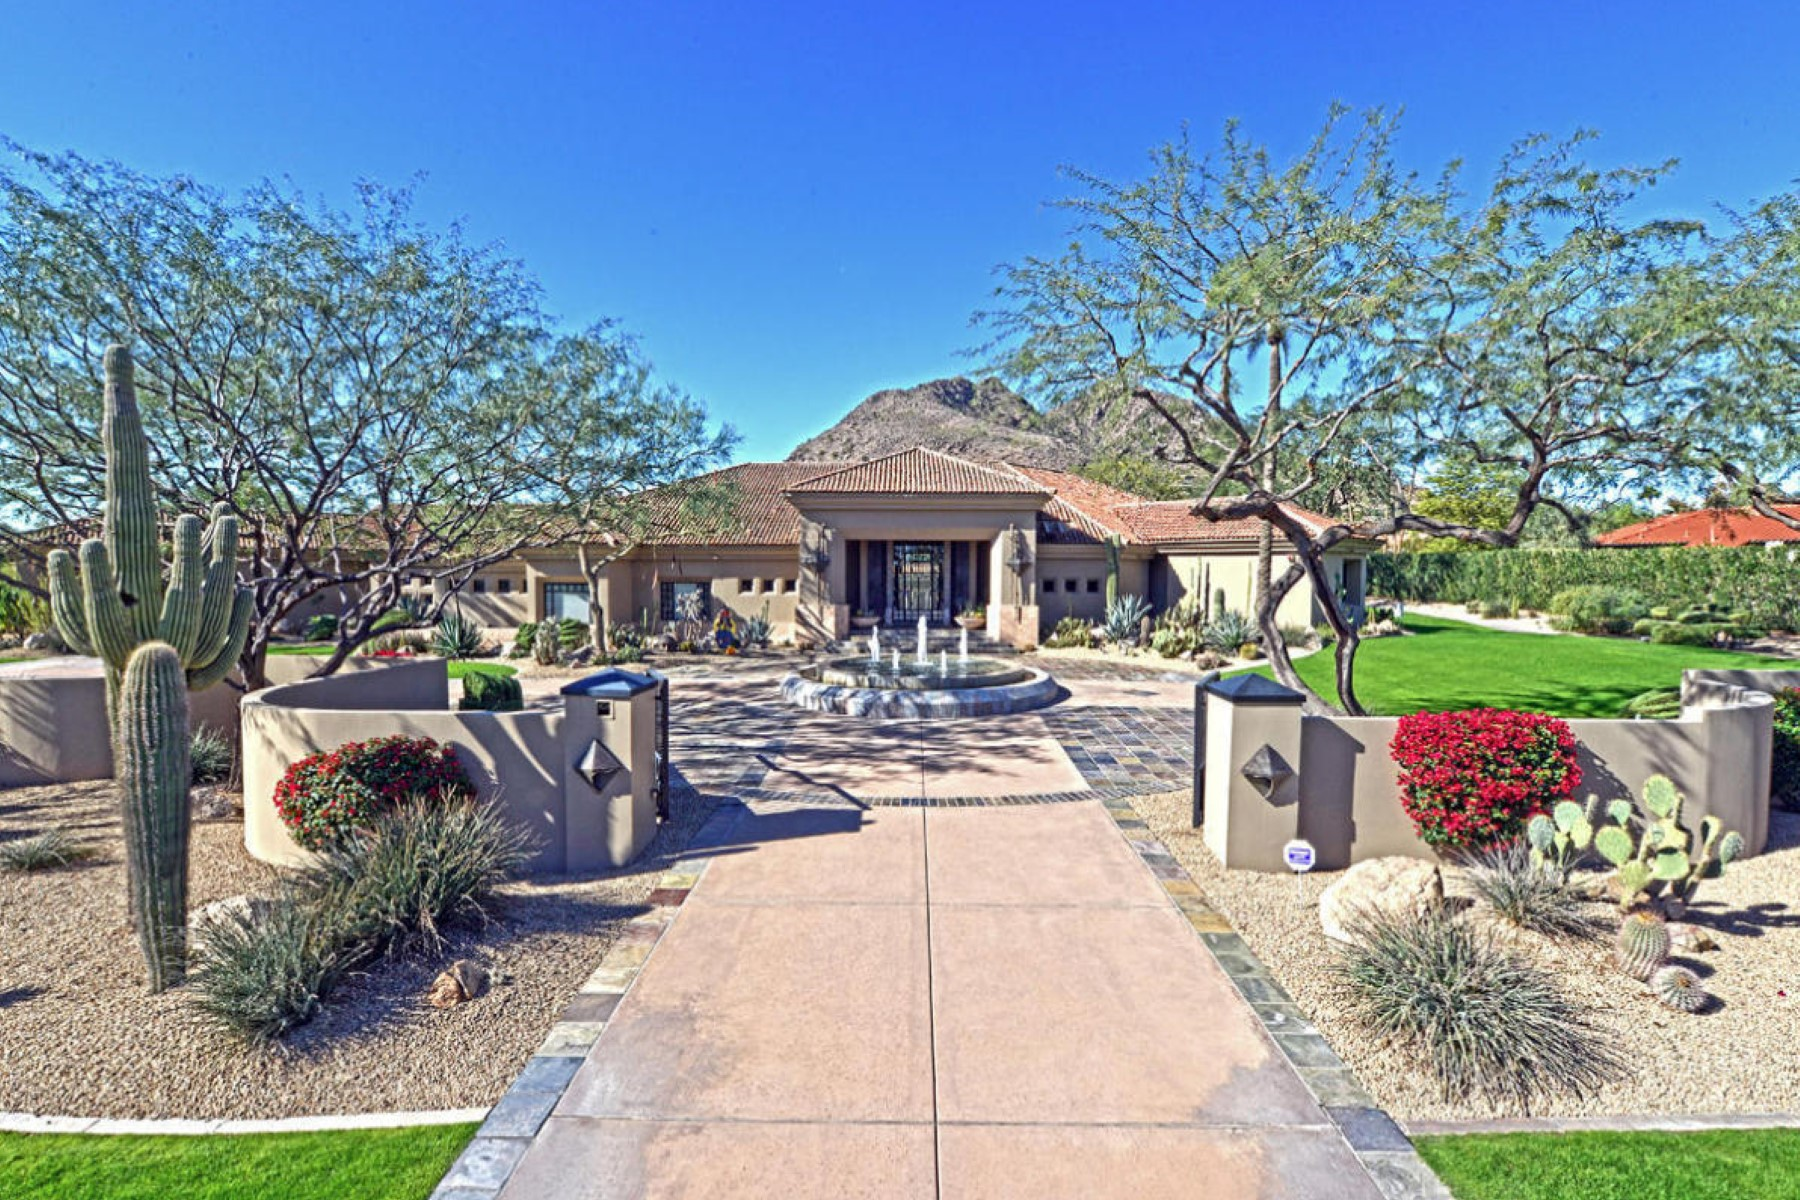 Villa per Vendita alle ore Valley's iconic streets sits a grand Paradise Valley estate on over 2 gated-acre 5102 N Wilkinson Rd Paradise Valley, Arizona, 85253 Stati Uniti